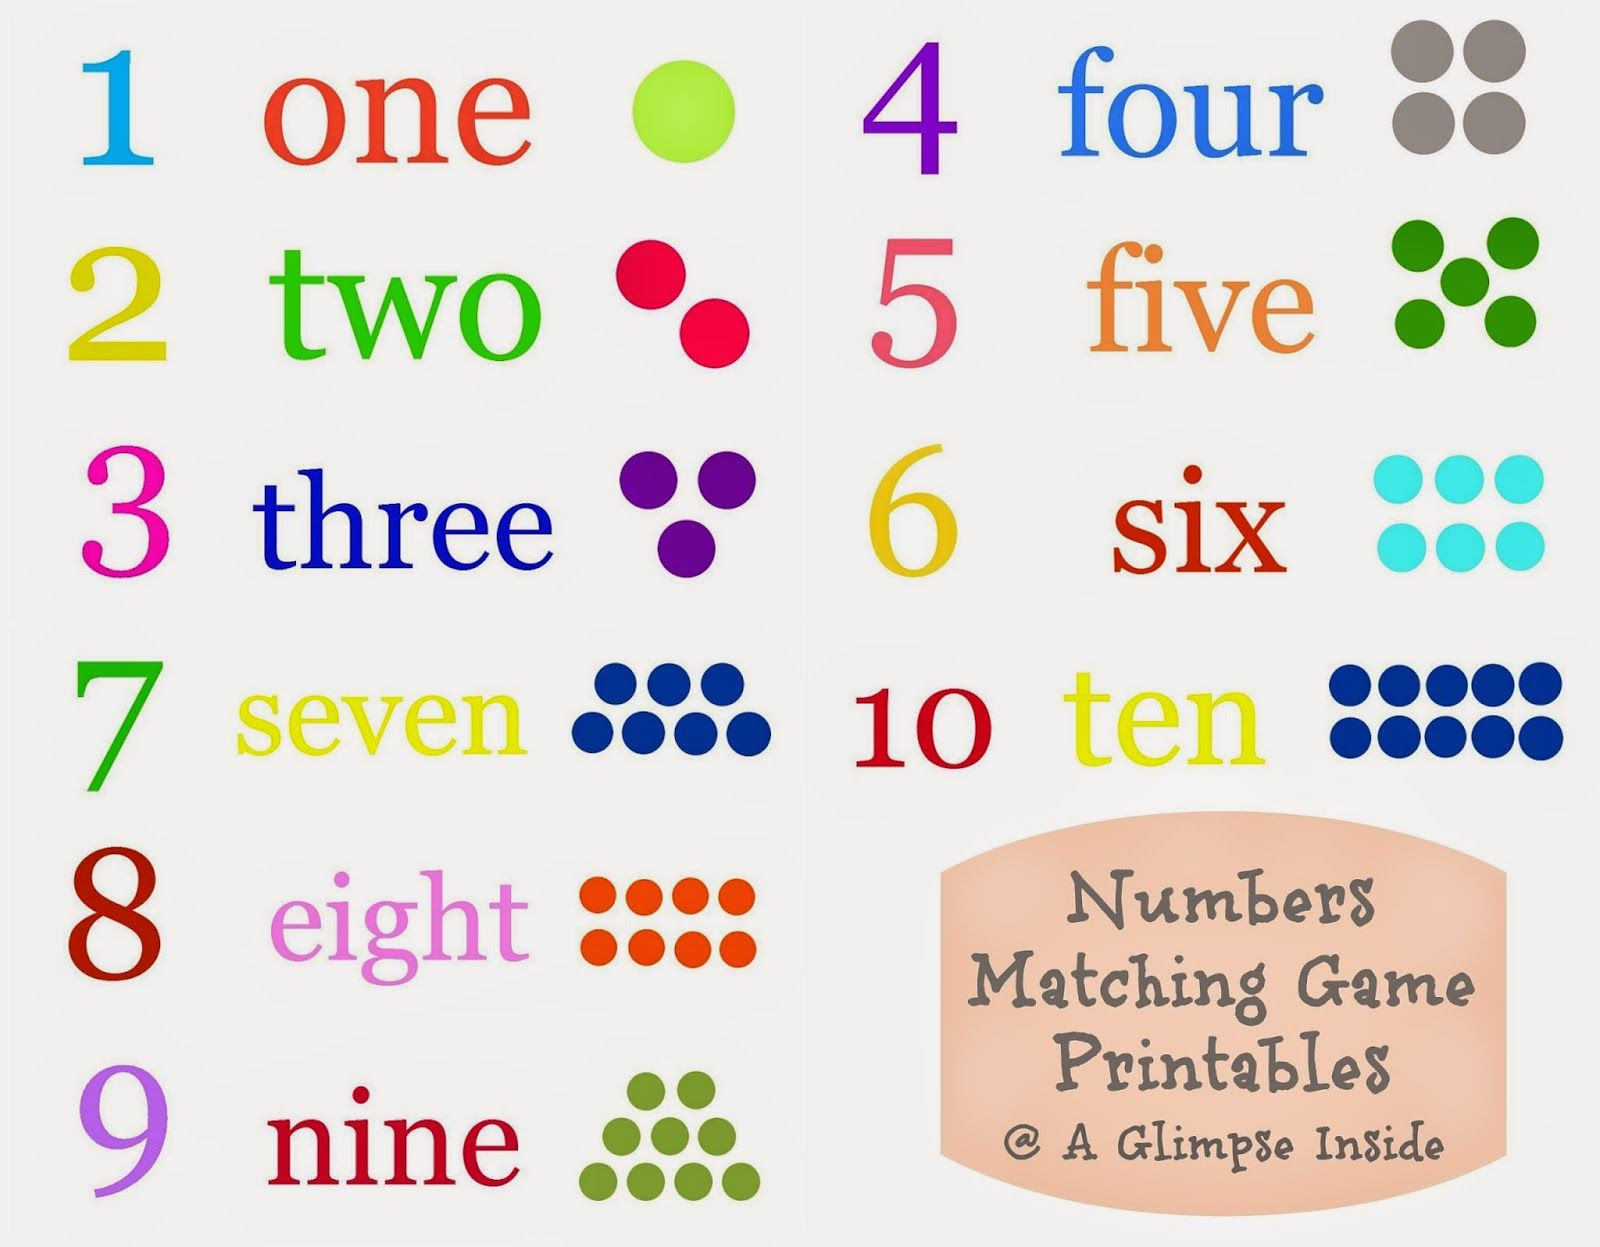 A Glimpse Inside Numbers Matching Game Printables